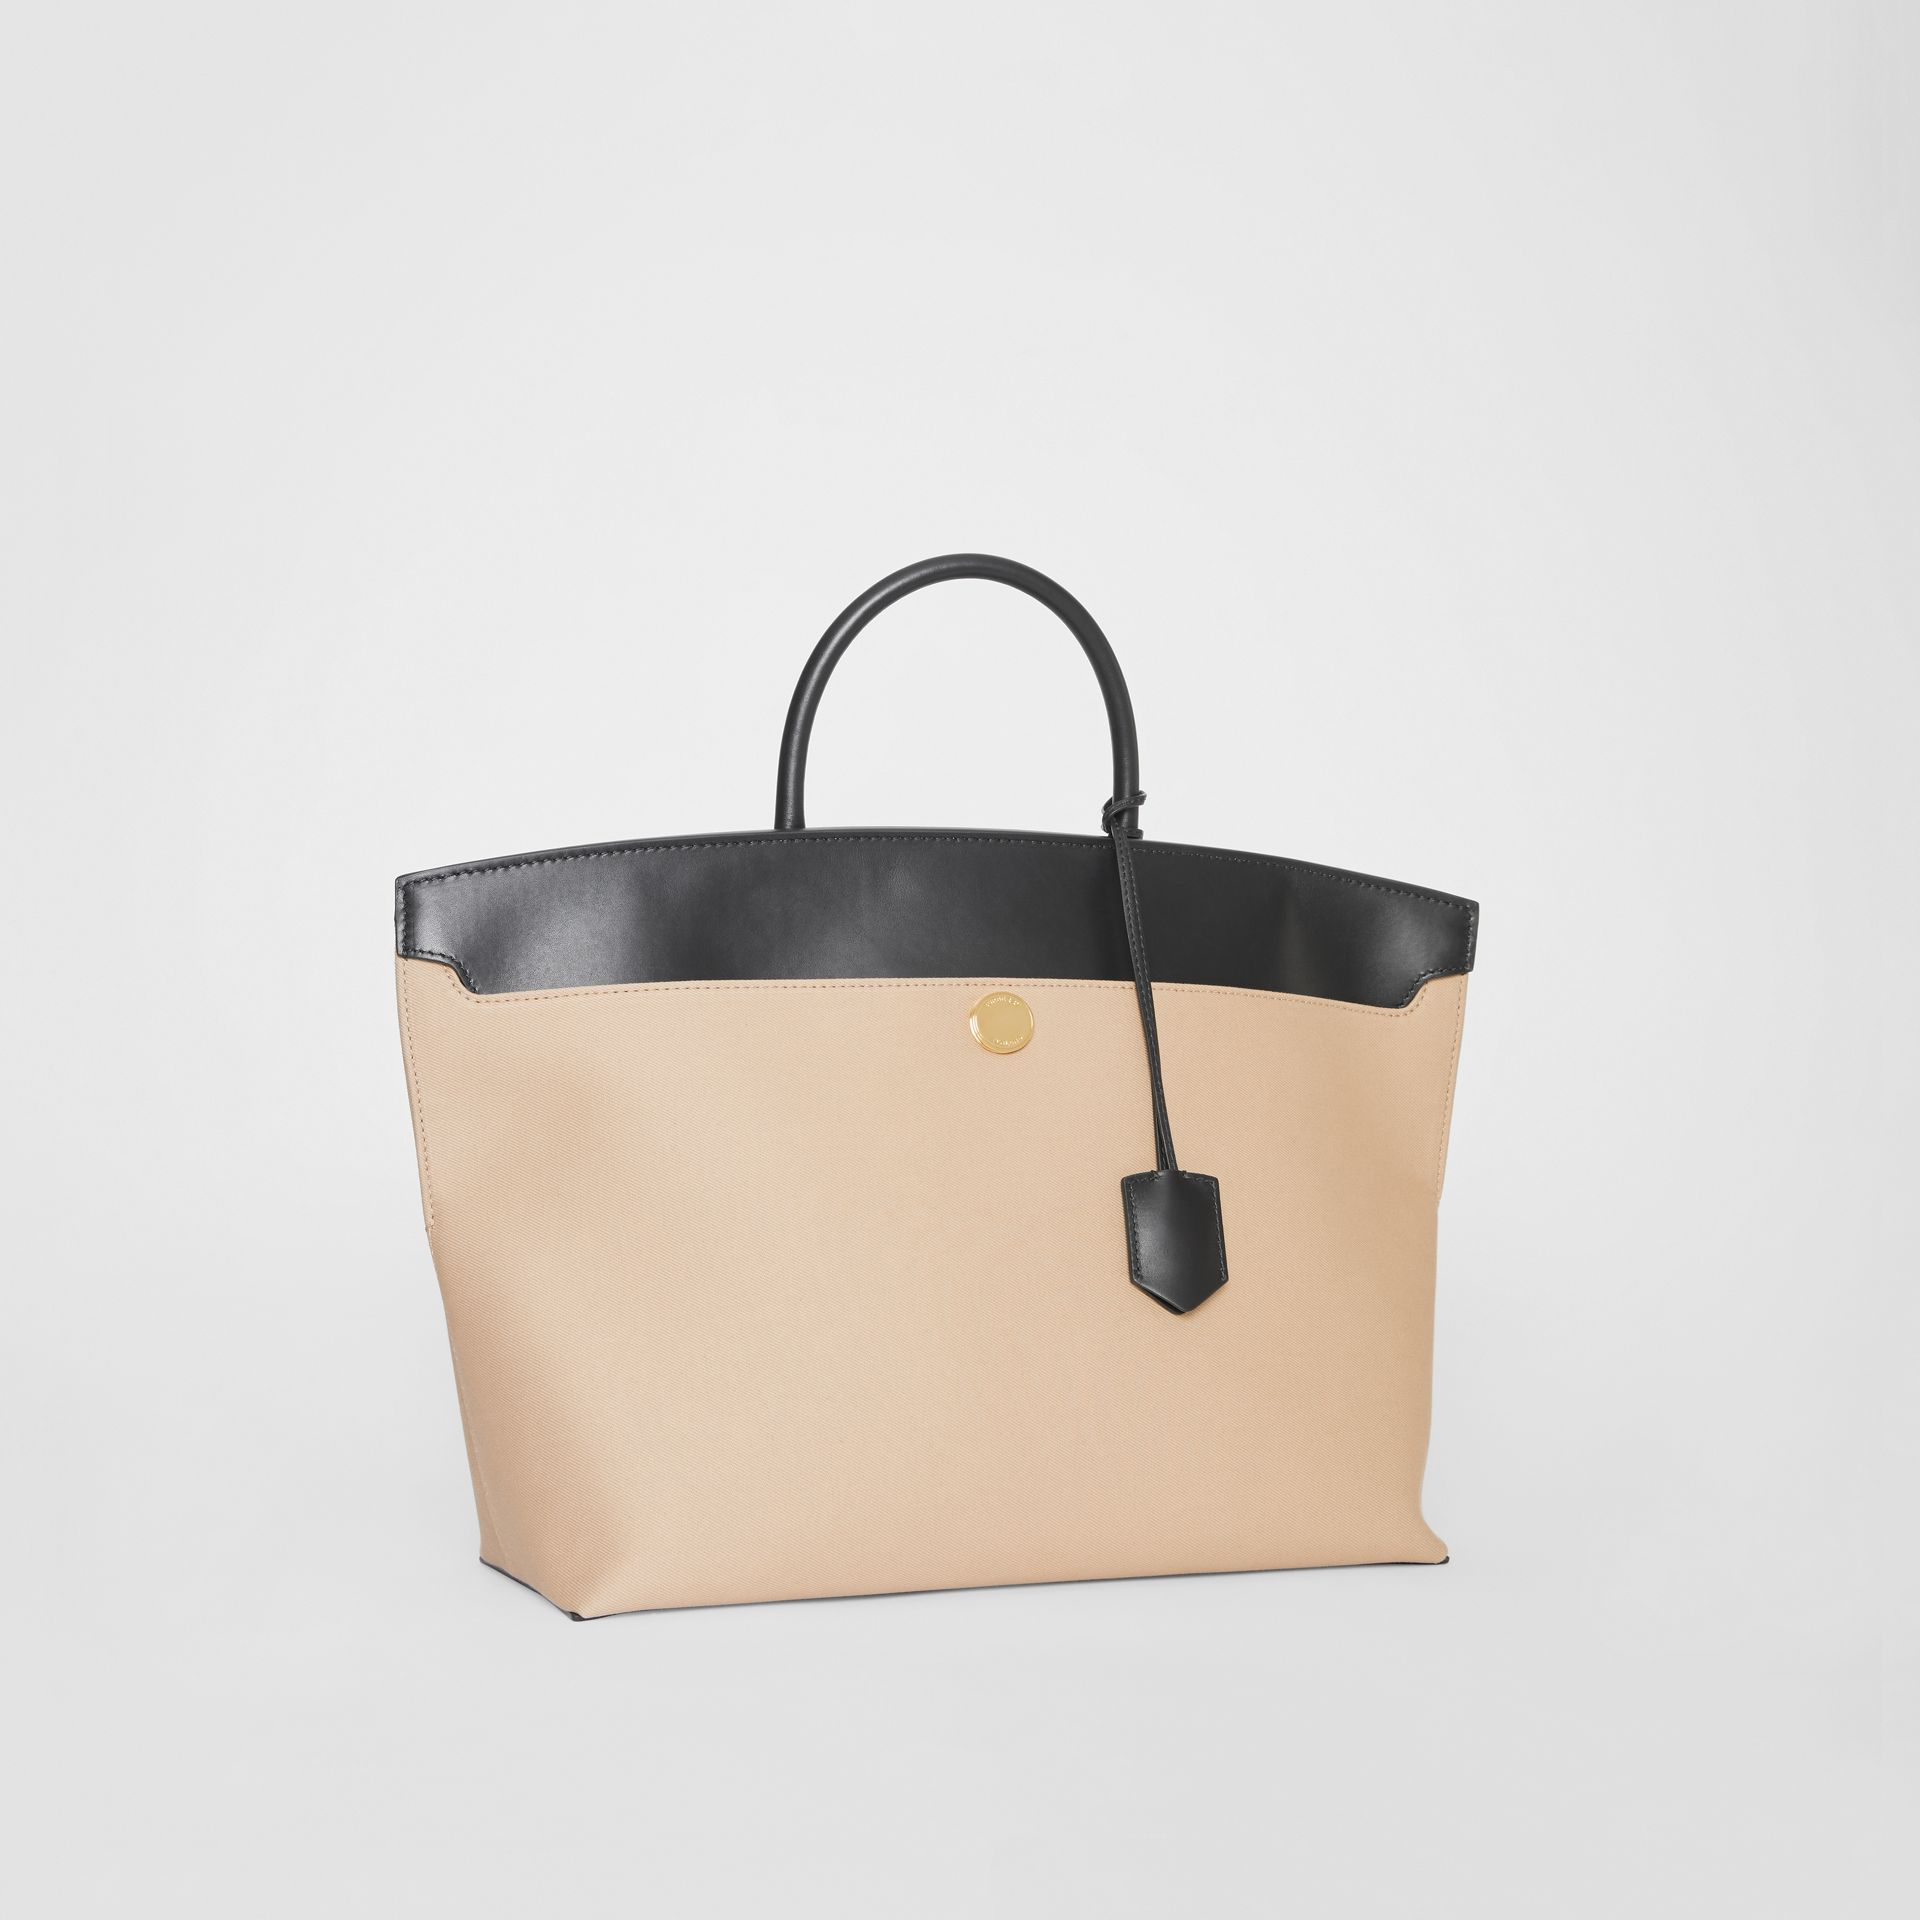 Cotton Canvas and Leather Society Top Handle Bag in Black/honey - Women | Burberry Singapore - gallery image 6